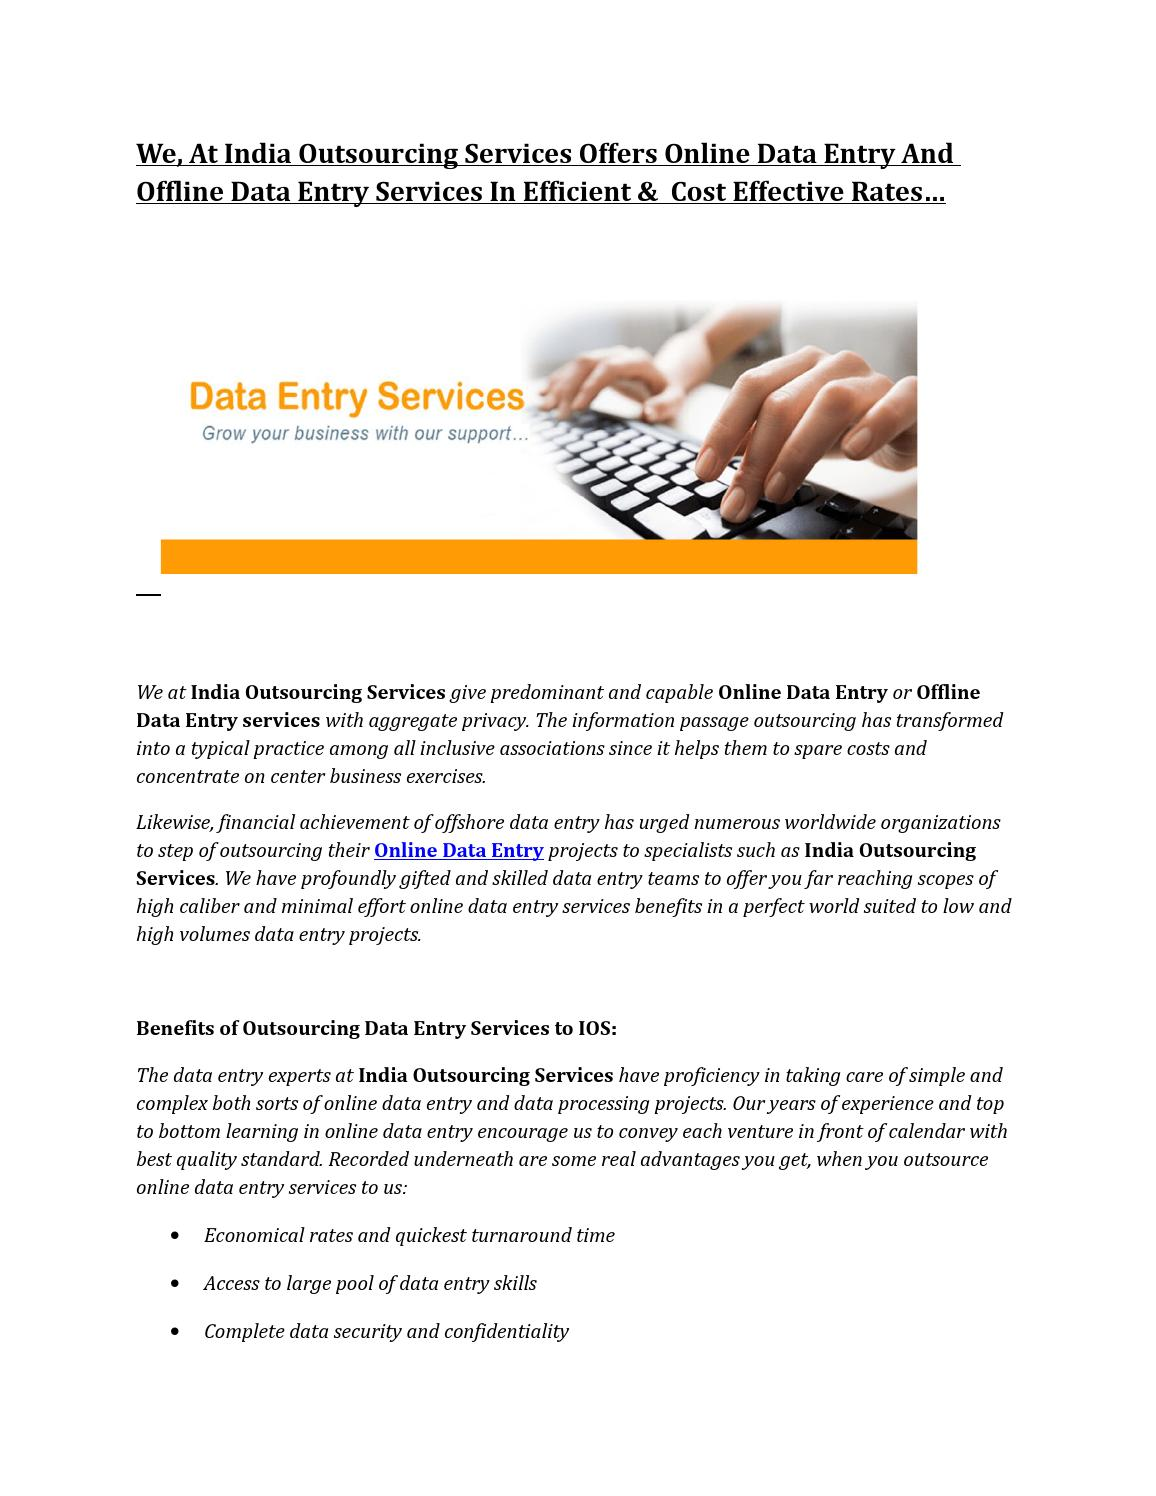 Data Processing Outsourcing Services by geetaios02 - issuu